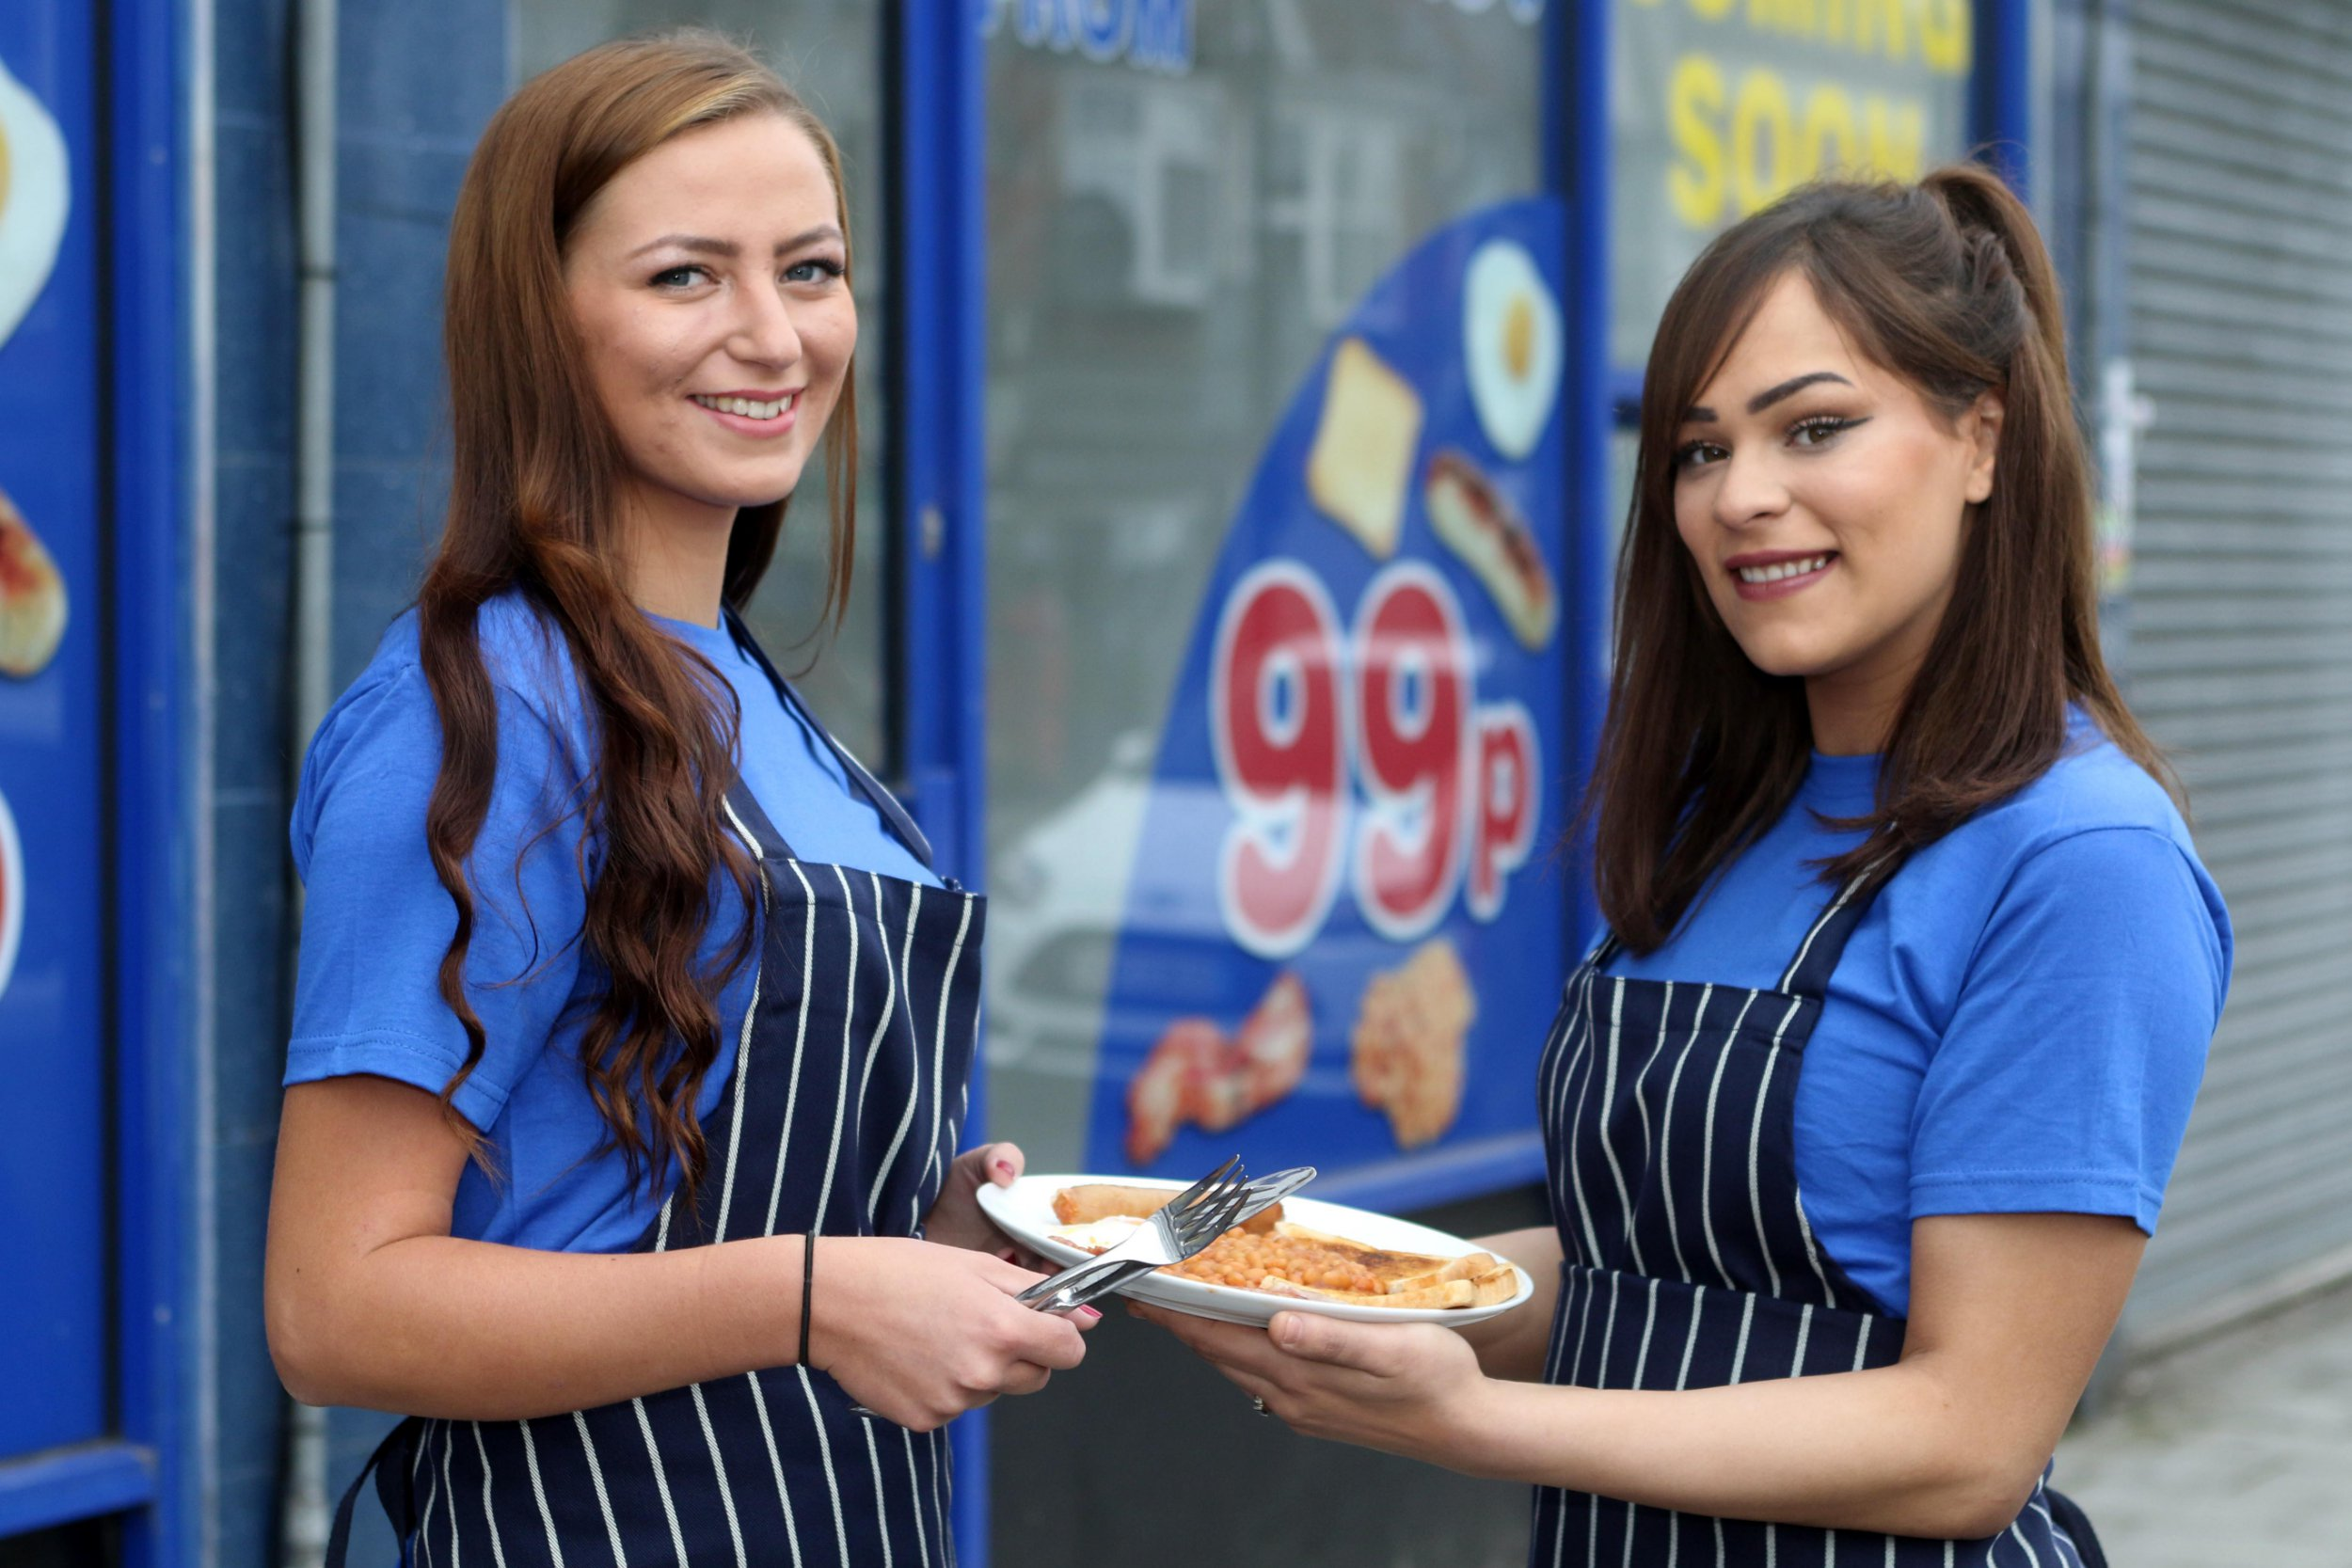 Date: April 10 2018 Location: Southend, Essex, England. A caf?? selling what could be Britain???s cheapest fry-up for just 99p is hitting the High Street. The Grafters Cafe, in Southend, Essex will target tradesman as well as striving families ??? billing itself as the ???Poundland??? of restaurants. Pictured: (l-r) Waitresses Jess Kavanagh (left) and Sophia Stanford, both 22 outside the cafe. Words: Essex News and Pictures.